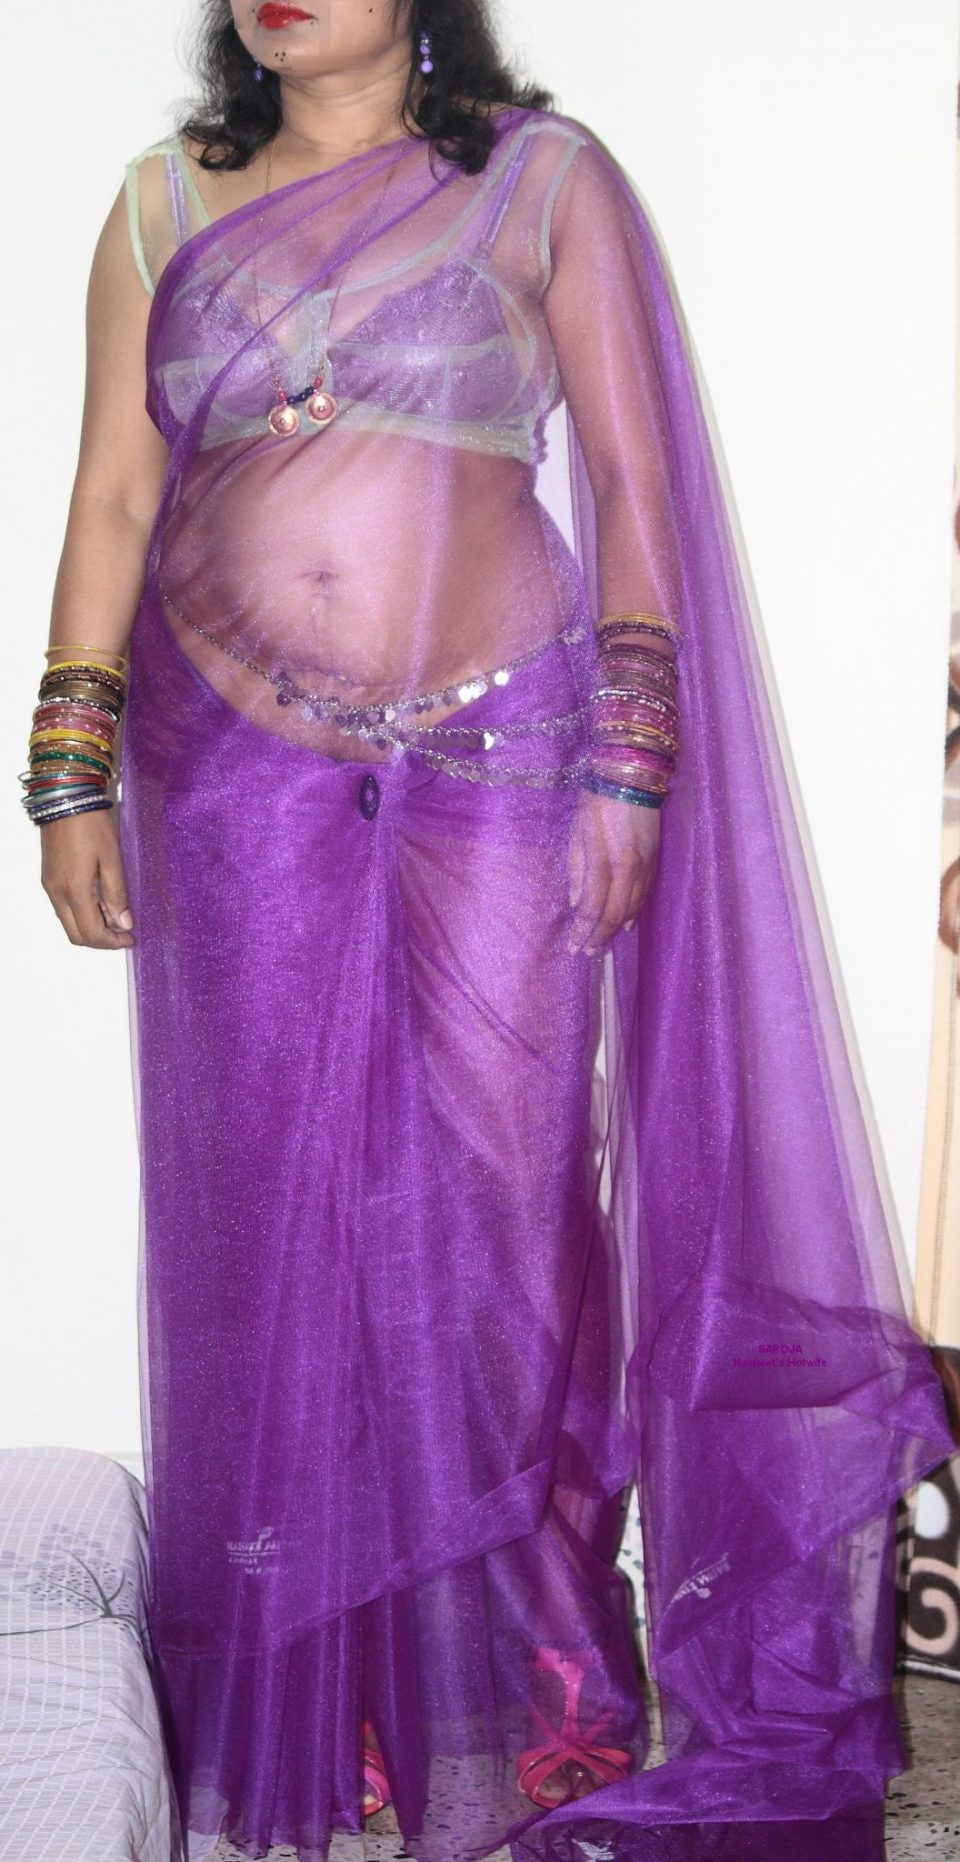 Tamil Aunty Transparent Saree Bra Images  Indian Sex Gallery-6337